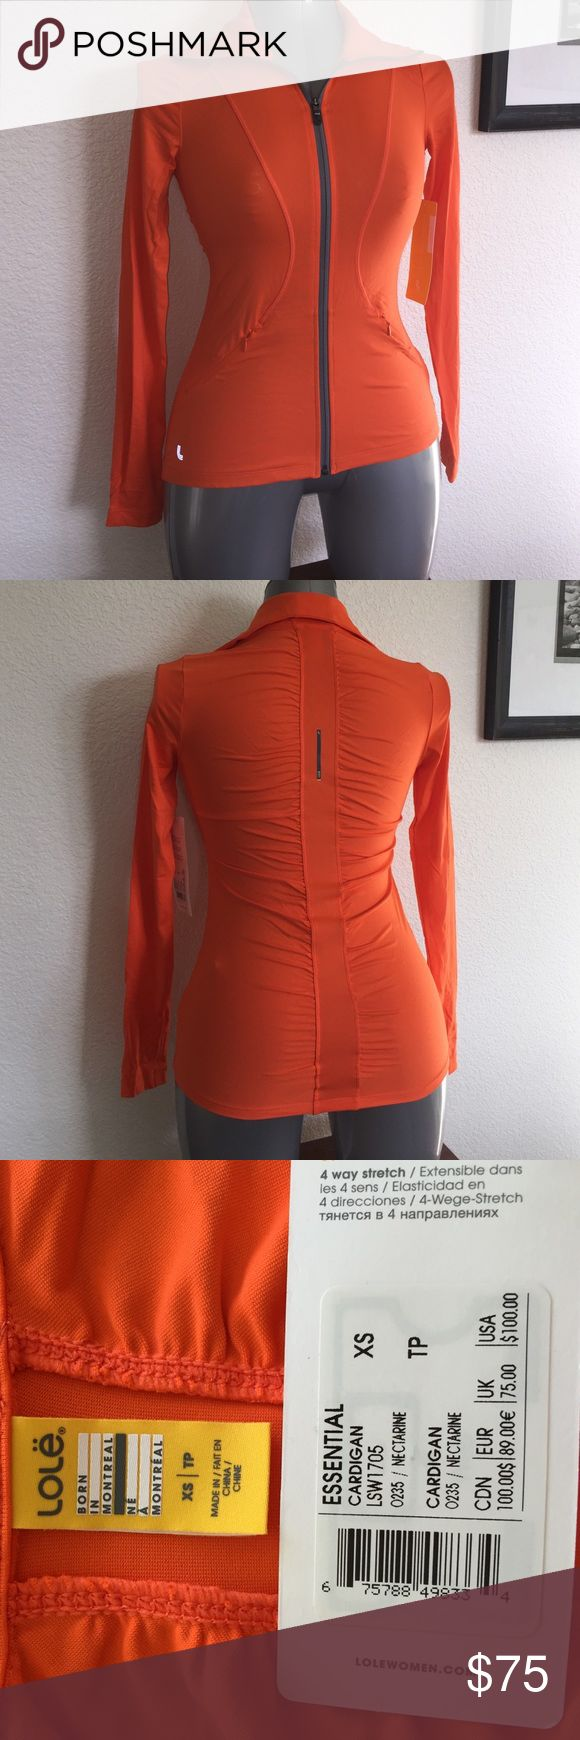 NWT Lole jacket Lole New with Tags! Nice nectarine colored running jacket. Wicks away moisture to keep you comfortable while running!  Nice detail in back as well! # 6099 Lole Tops